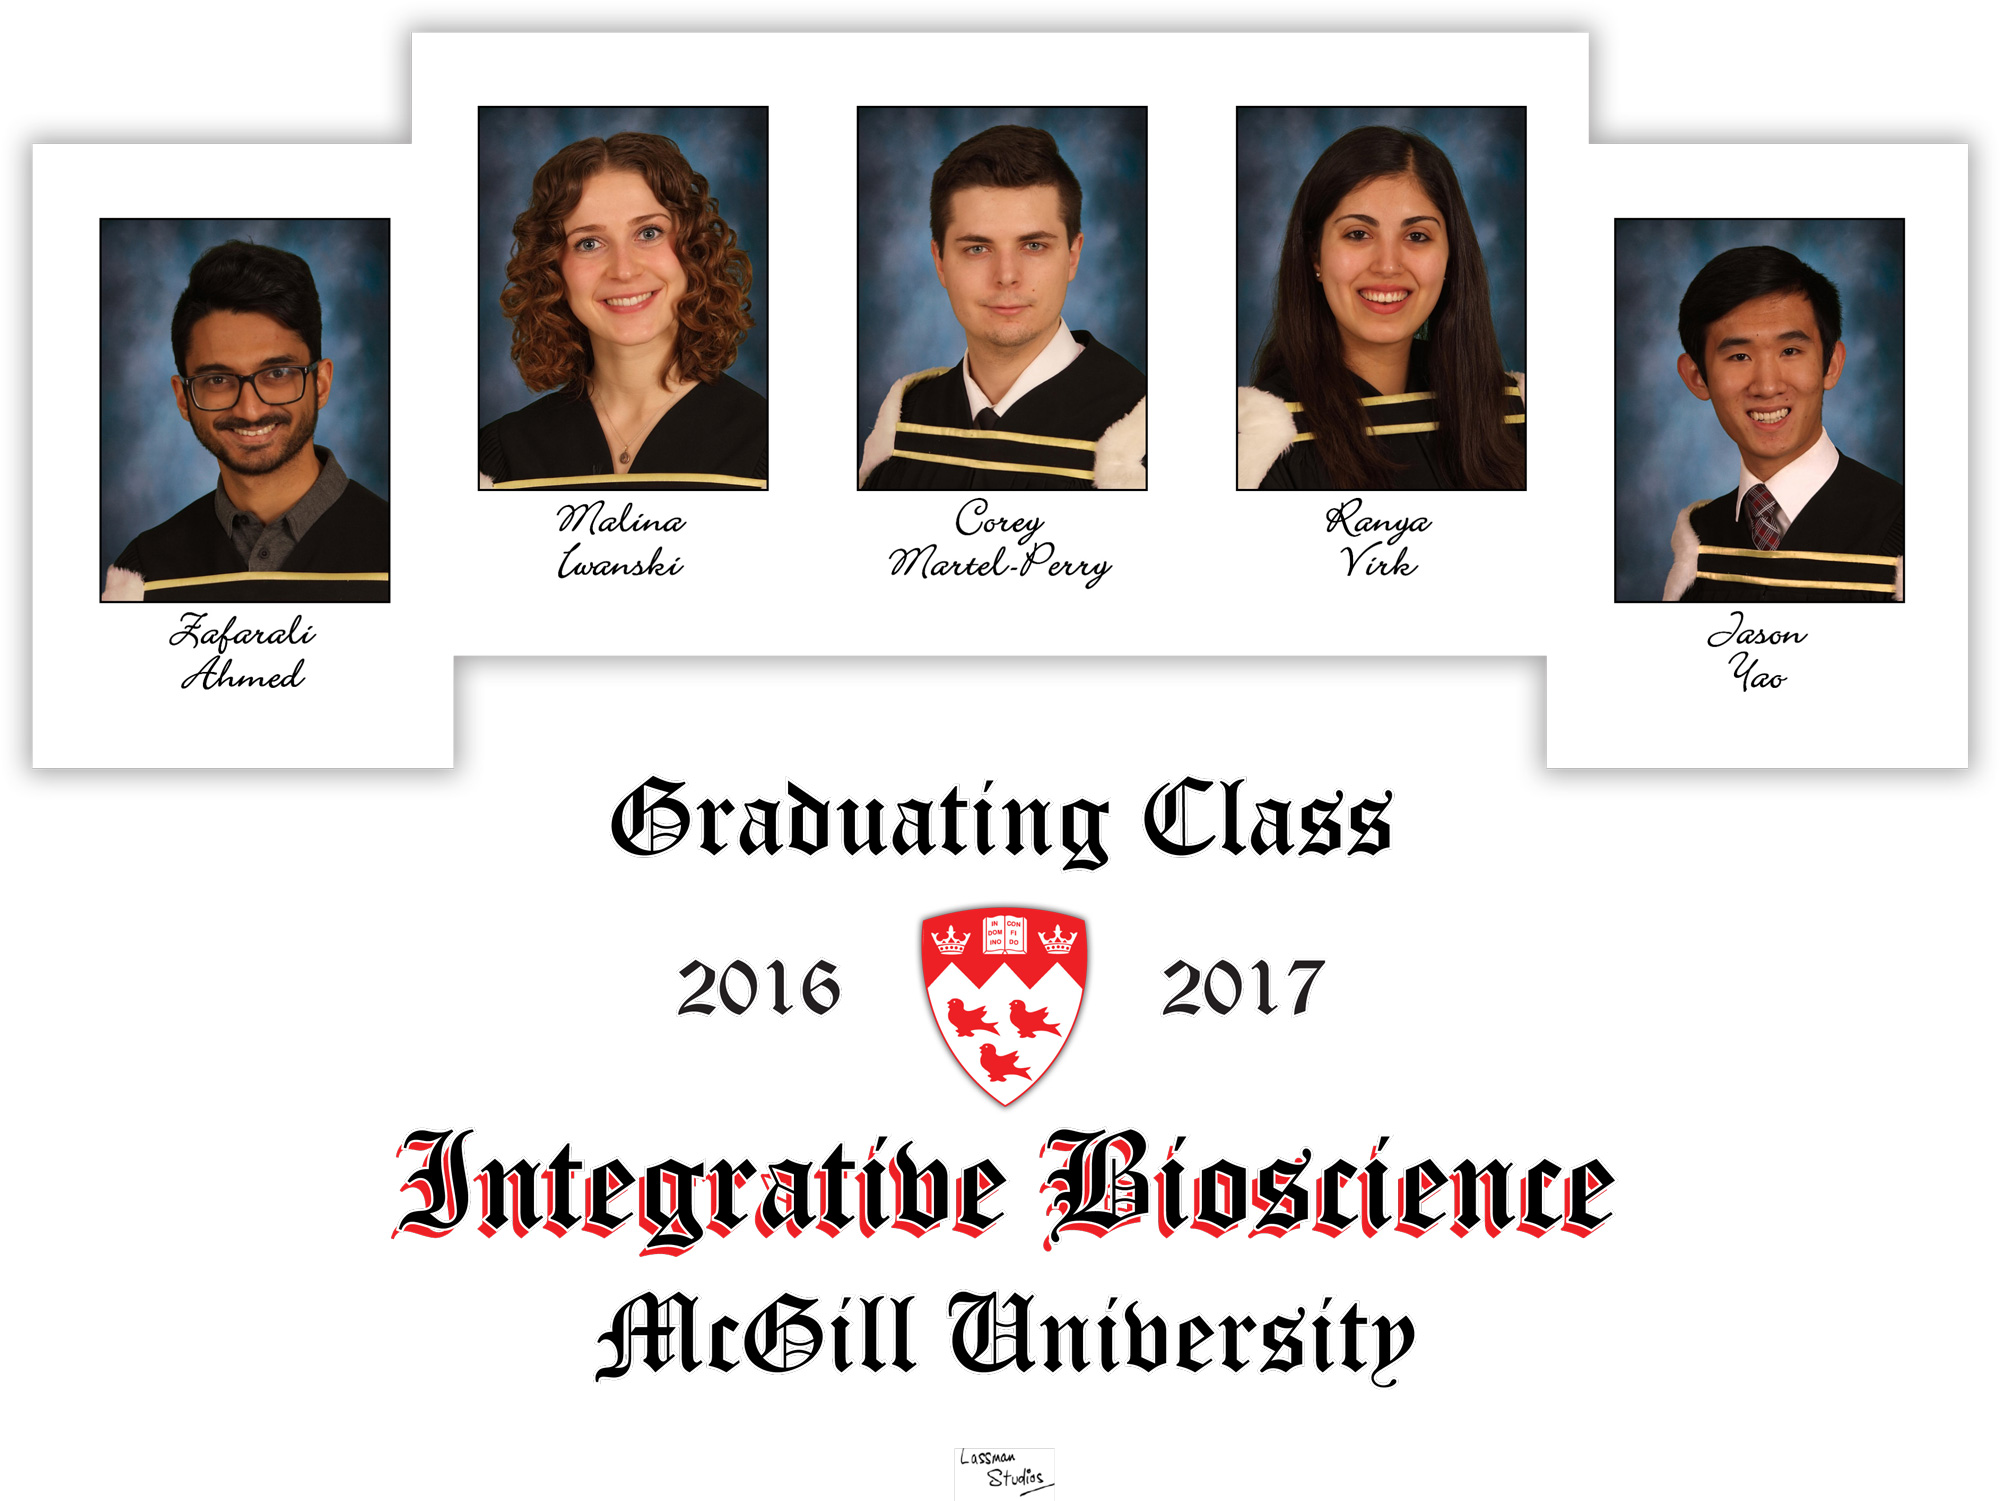 Mosaics-2017-Integrative-Bioscience